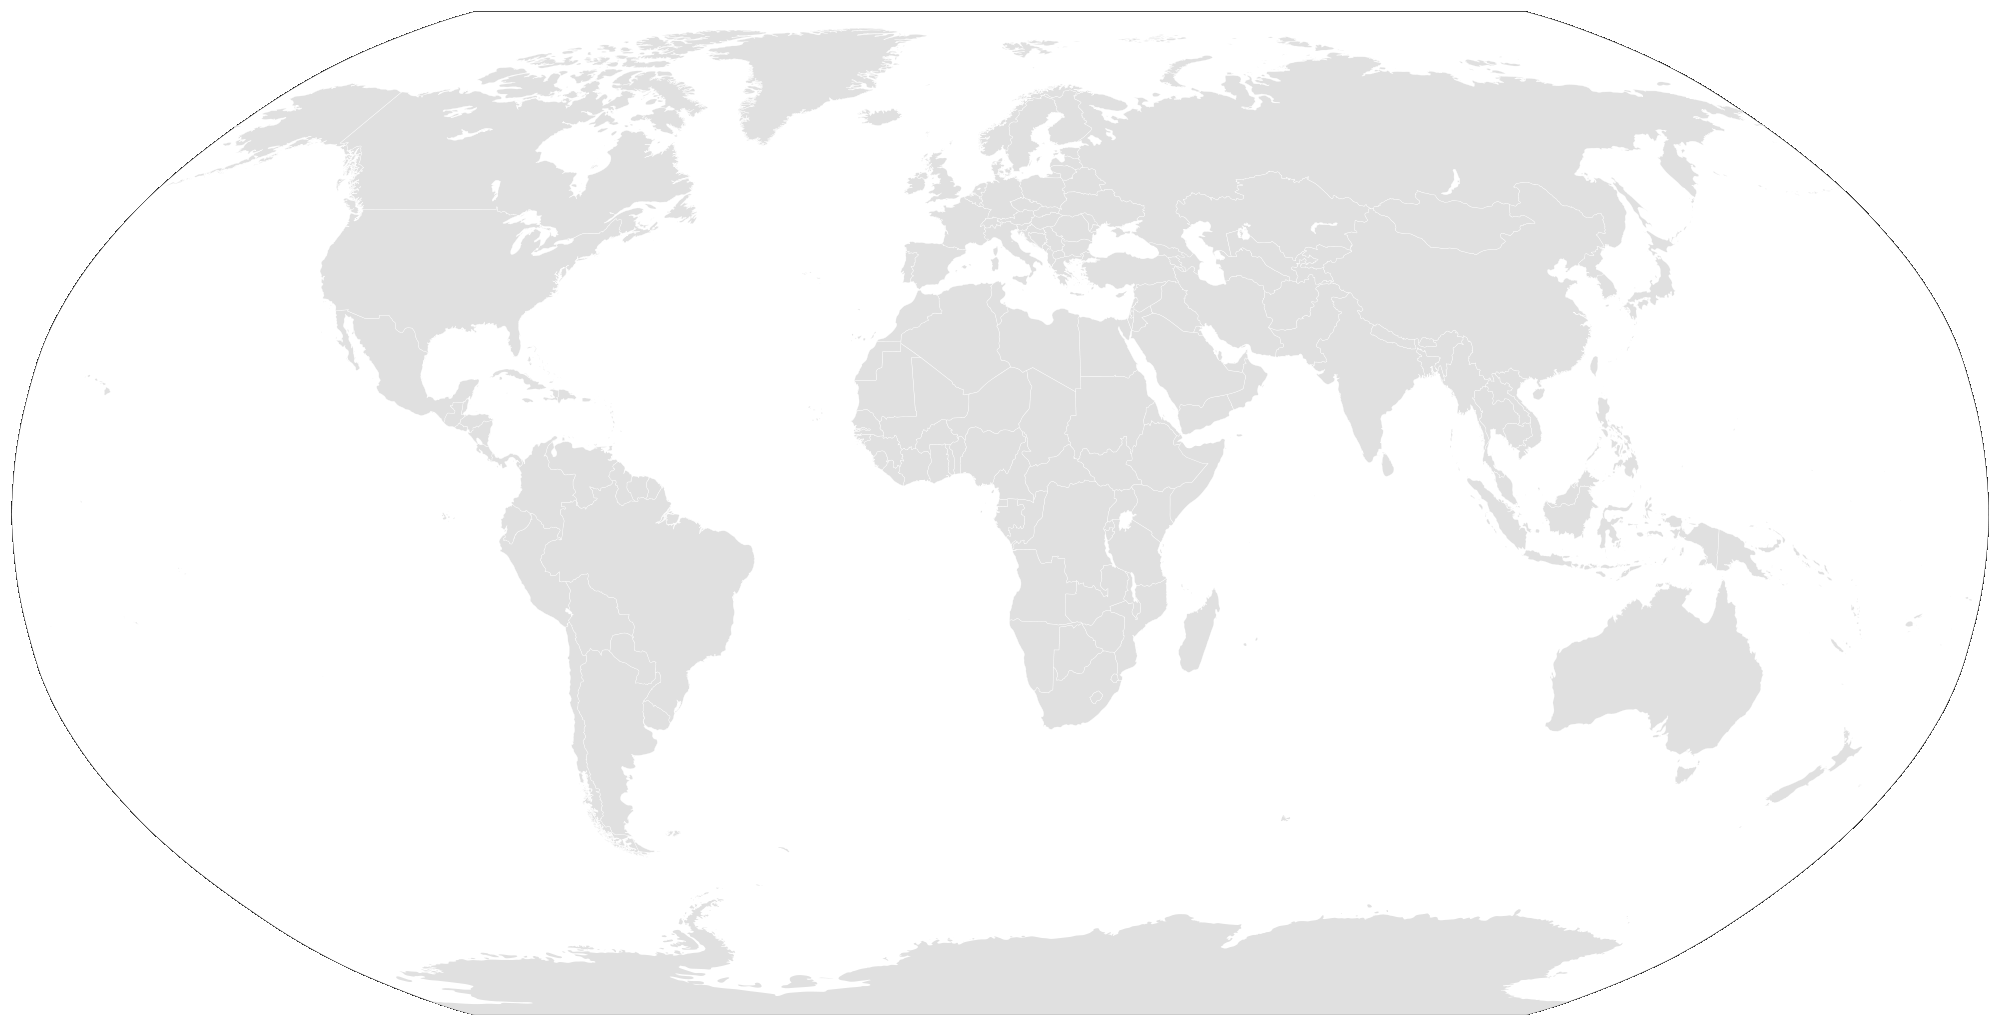 Image blankmap world 2011g implausable alternate history wiki blankmap world 2011g gumiabroncs Gallery